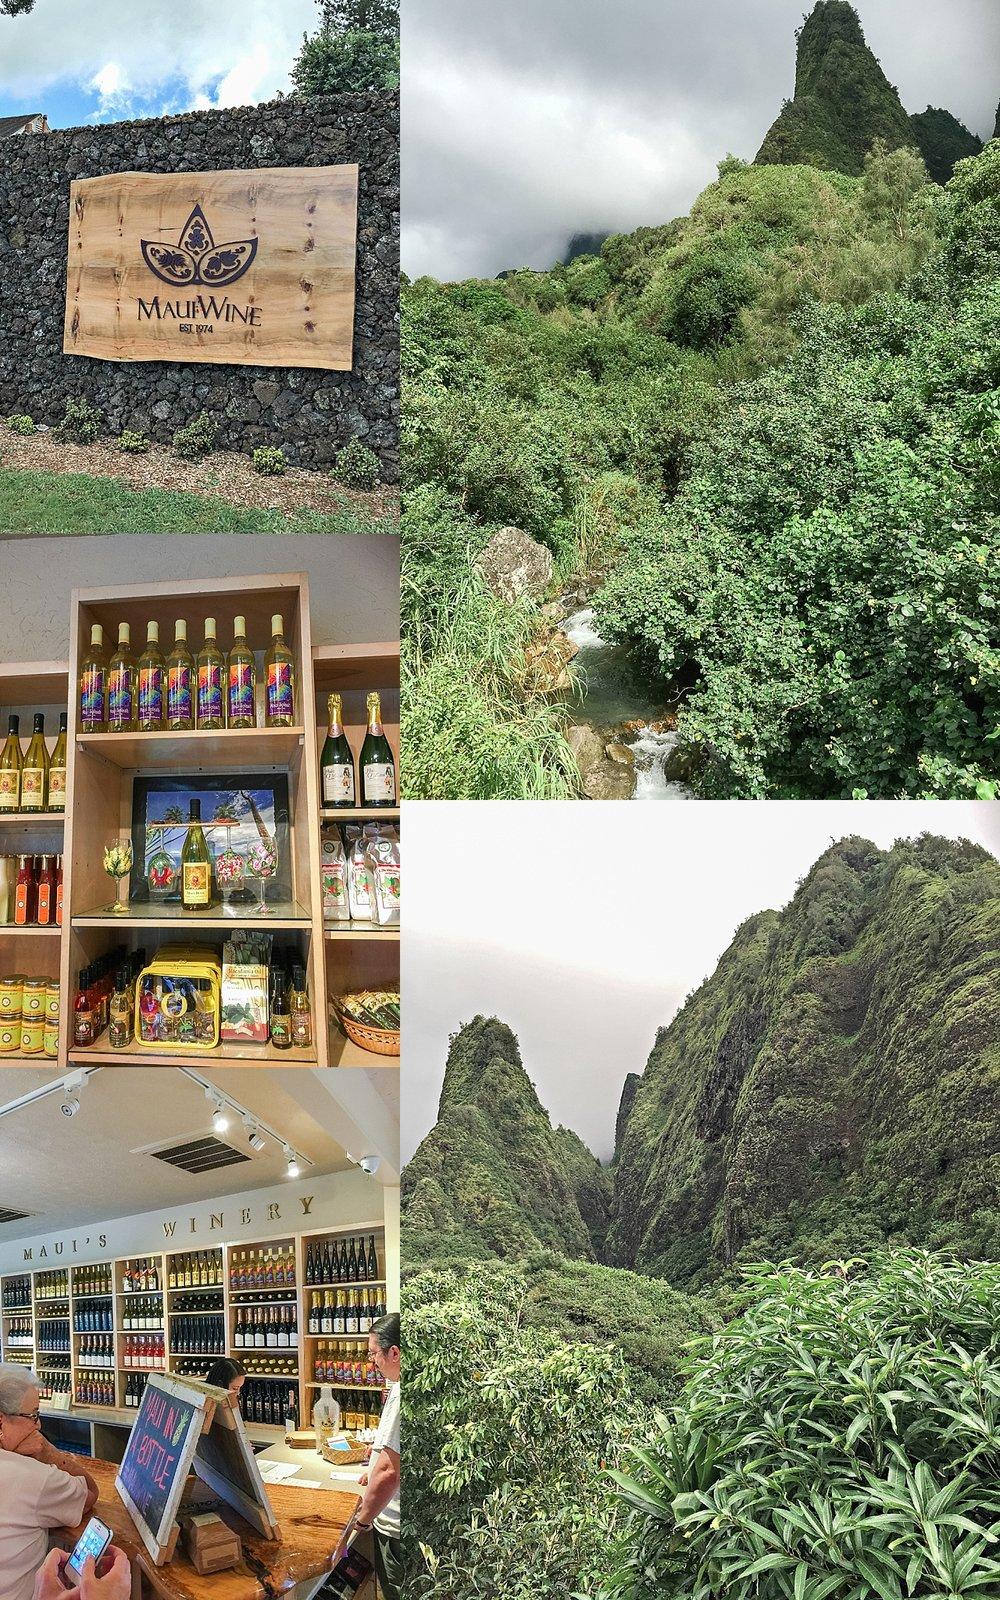 If you have time, I highly recommend a visit to Maui Wine and the 'lao Valley State Park.The three photos on the left is of Maui Wine. They will ship your bottles to the mainland. Here's a secret - you can also get their wines from Cost Plus World Market!The two photos on the right are of'Iao Valley State Park, where you'll find easy to intermediate hiking trails. -